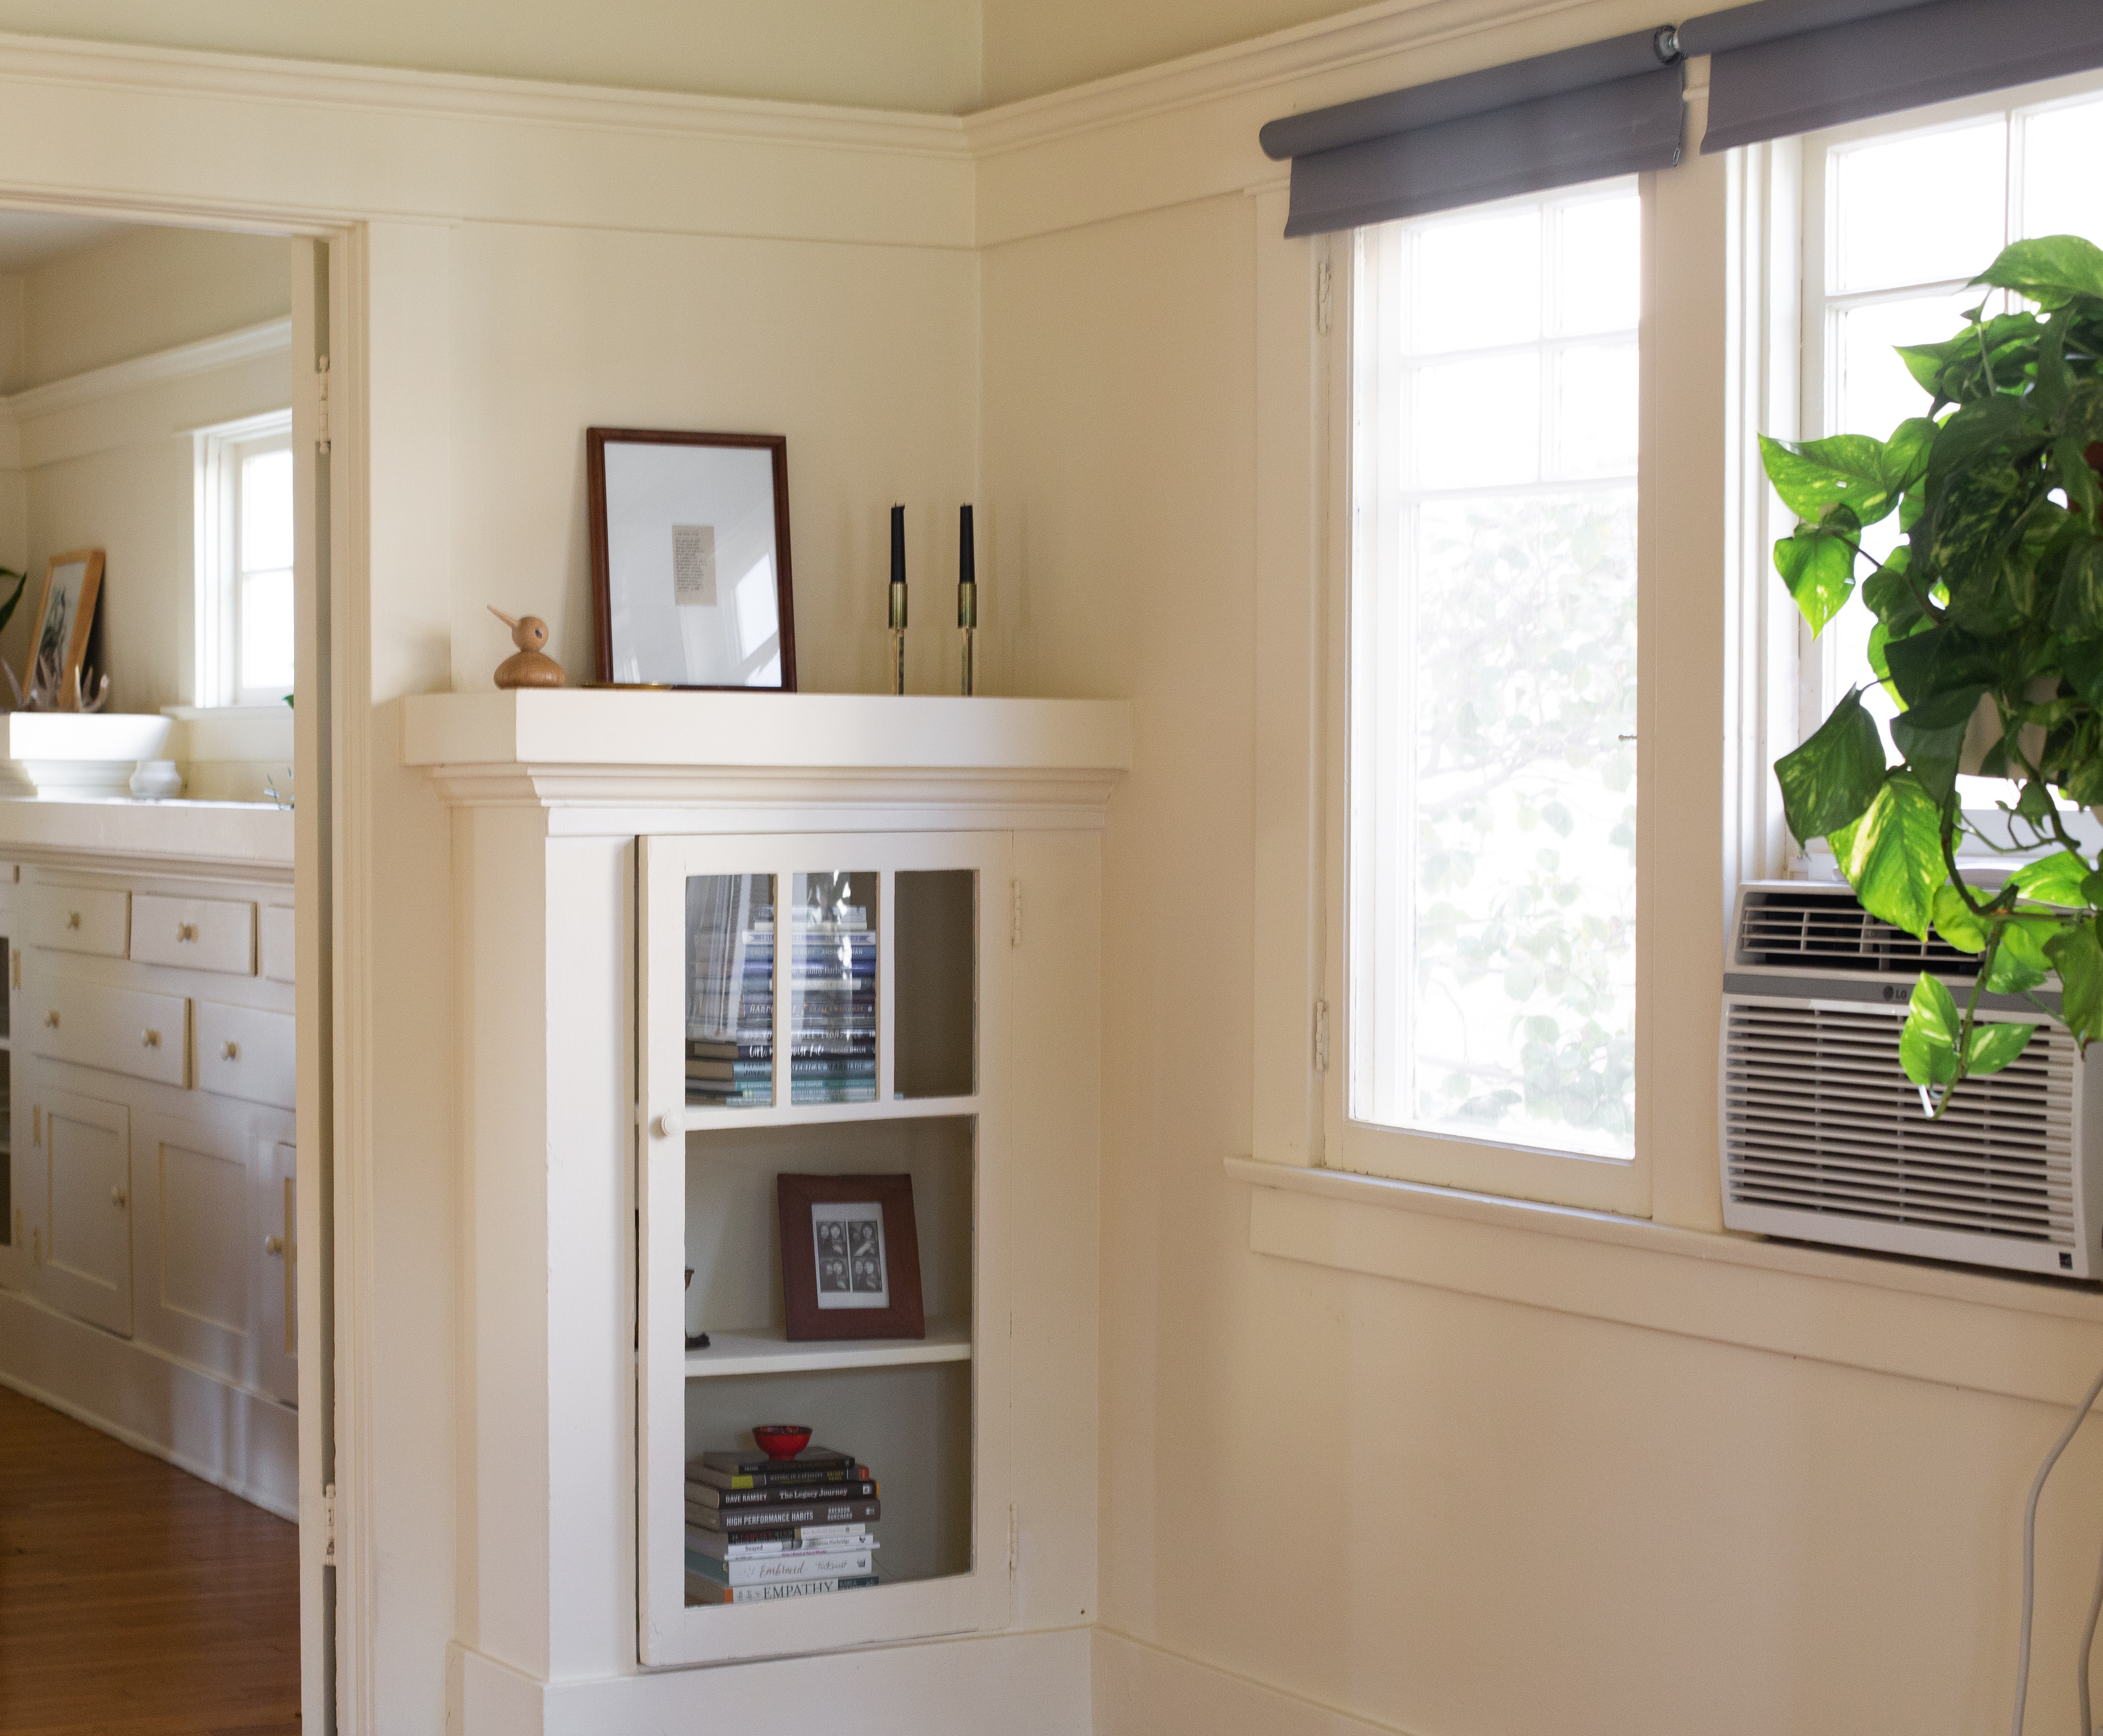 Cleaning Your A/C Vent Will Make Your Home Cooler — Here's How